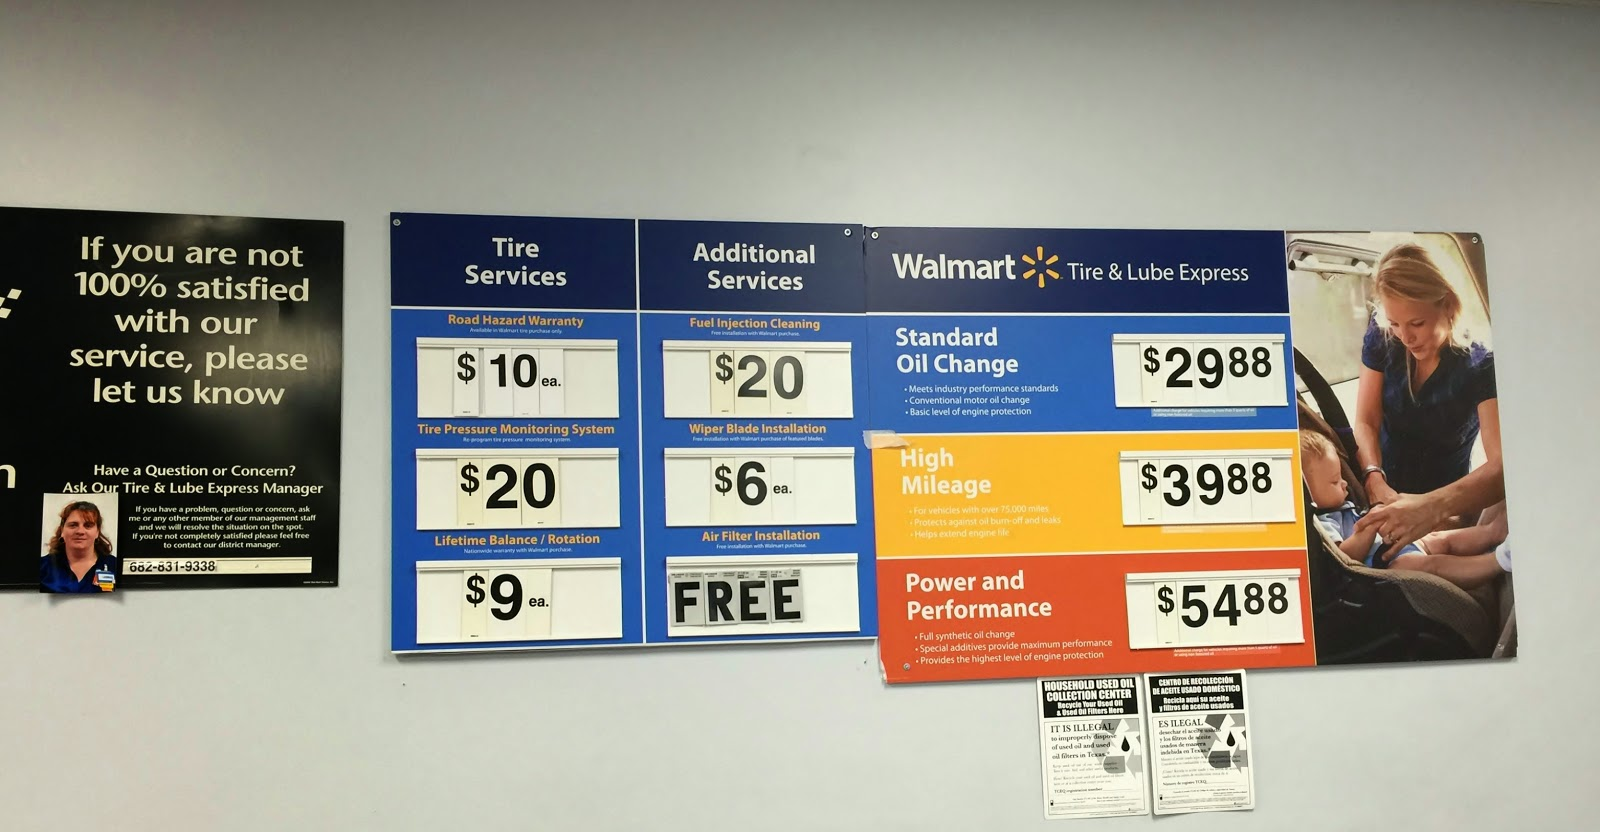 Walmart Oil Change Price >> Walmart Automotive Oil Change Price Autonom Adtddns Asia